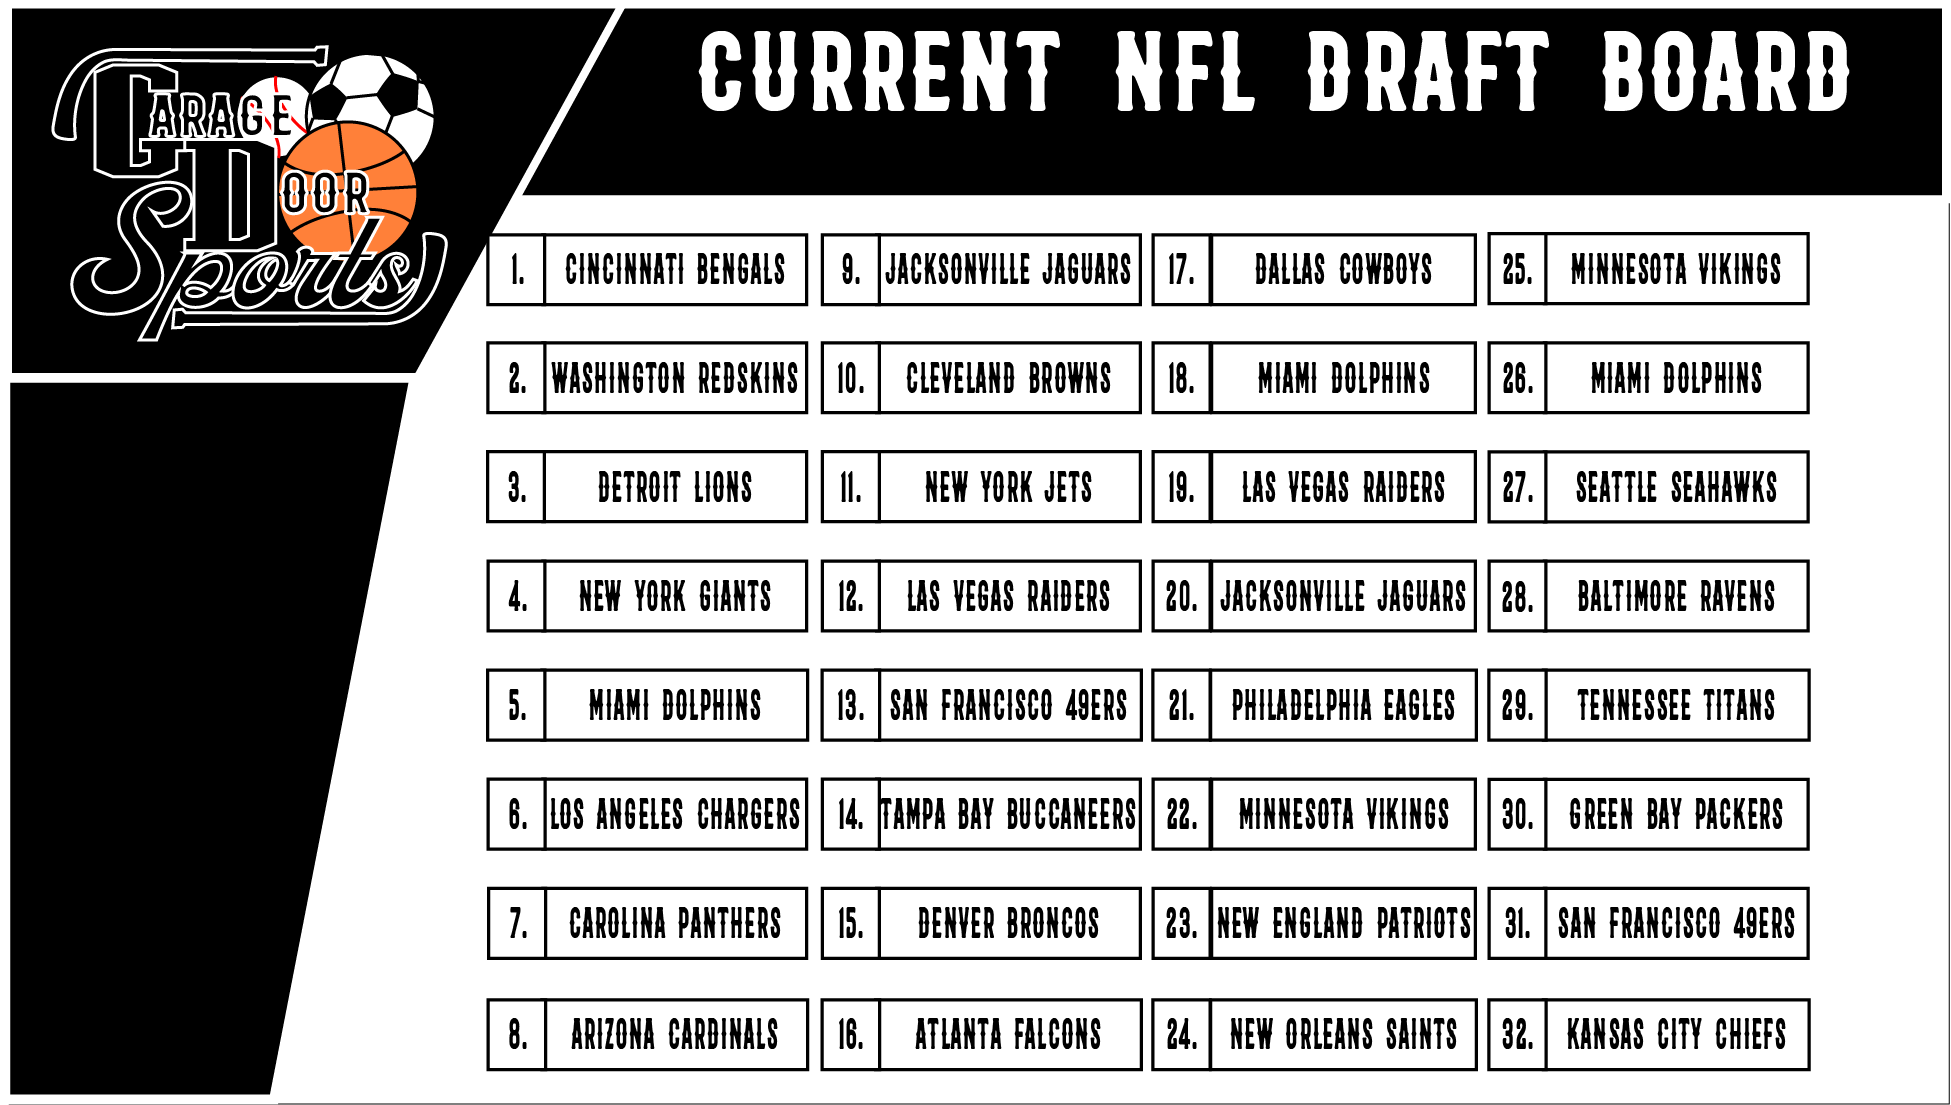 The current NFL Draft board prior to the 2020 NFL Draft.